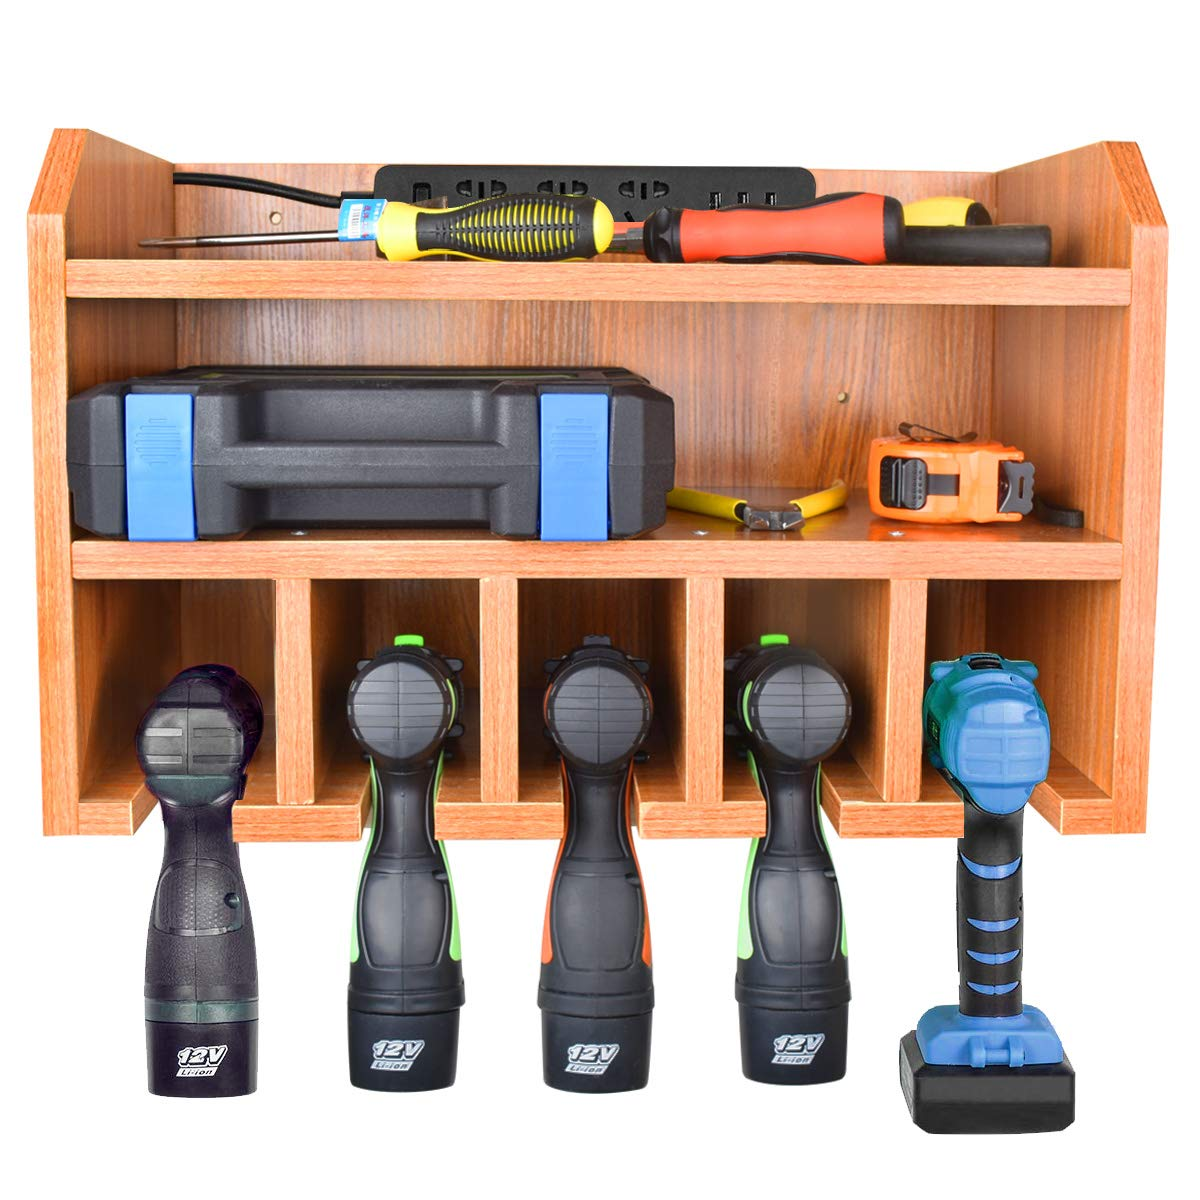 Power Tool Charging Storage - Drill Storage Organization Hanging Drill Wall Holder, Wall Mount Tools Home & Garage Storage System (Need to assemble yourself)